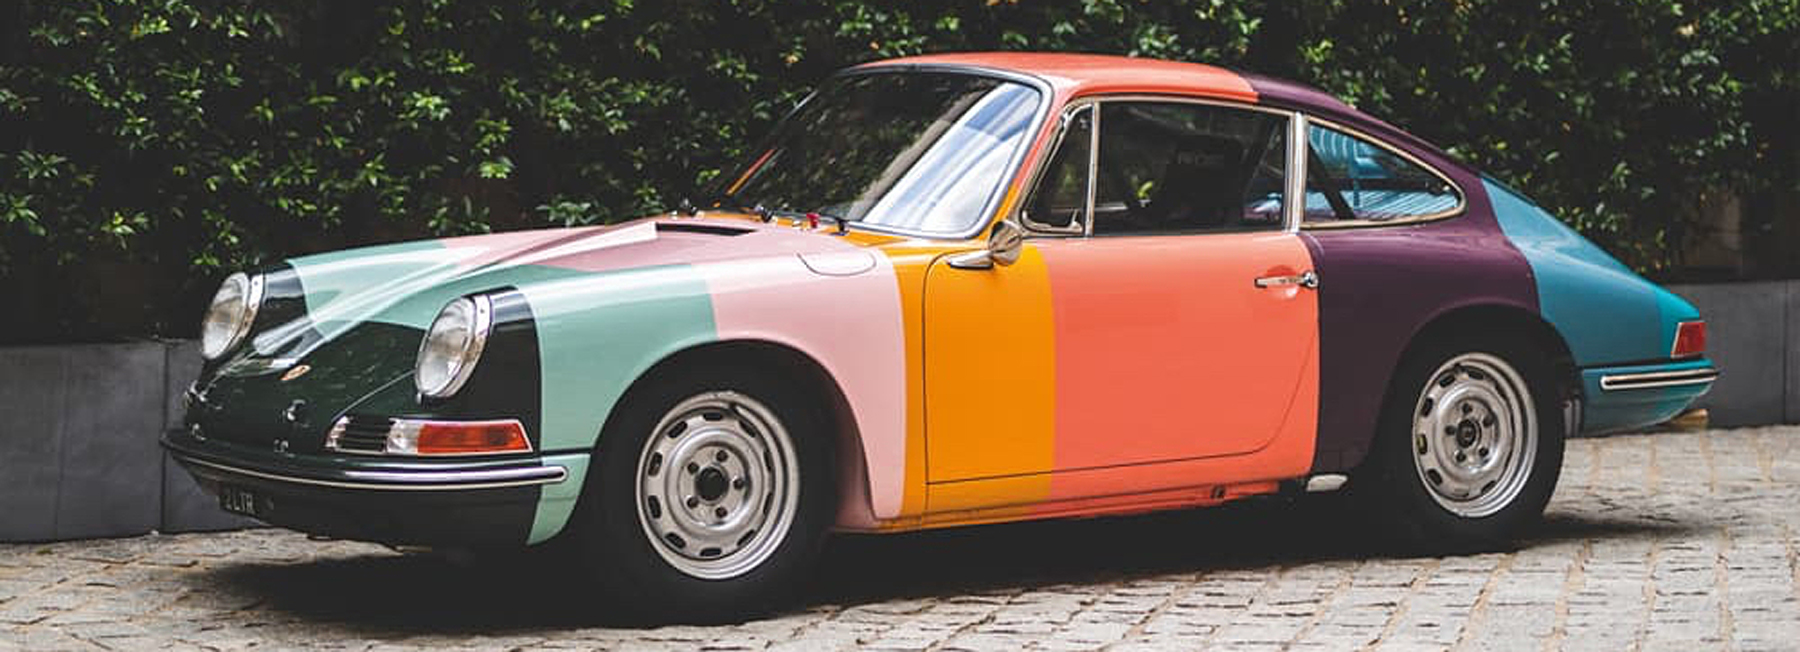 Ikea Le Mans This Porsche 1965 911 Has Been Made Over In Paul Smith S Iconic